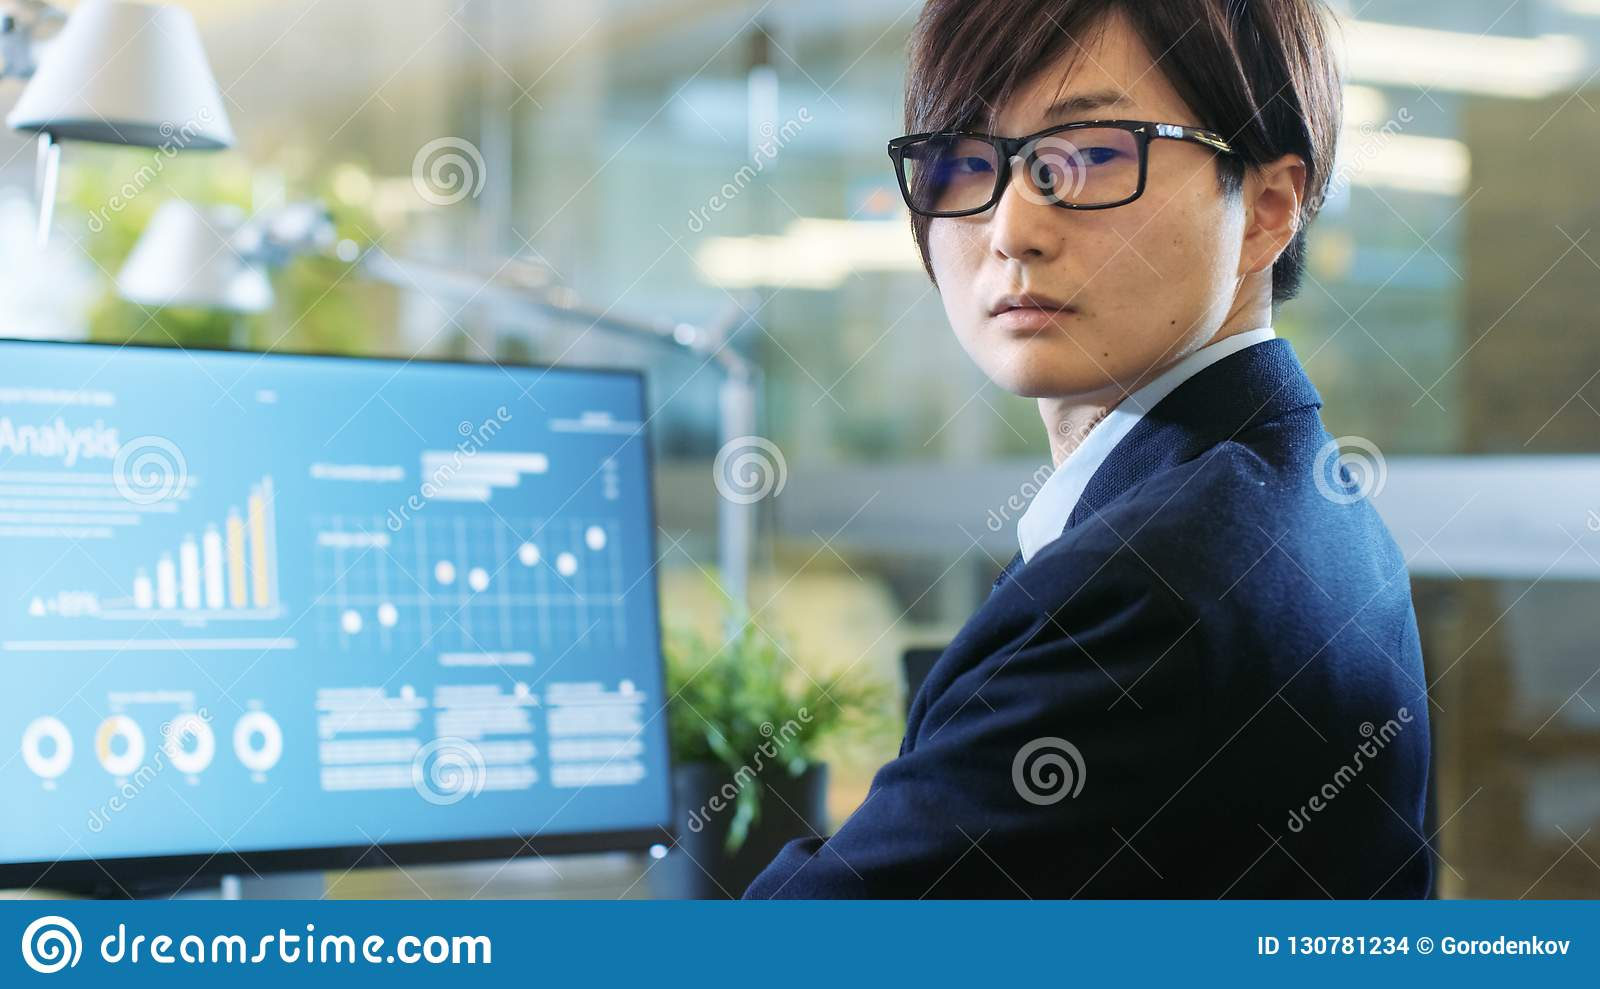 In the Stock Market Firm Office Broker Works with Statistical In